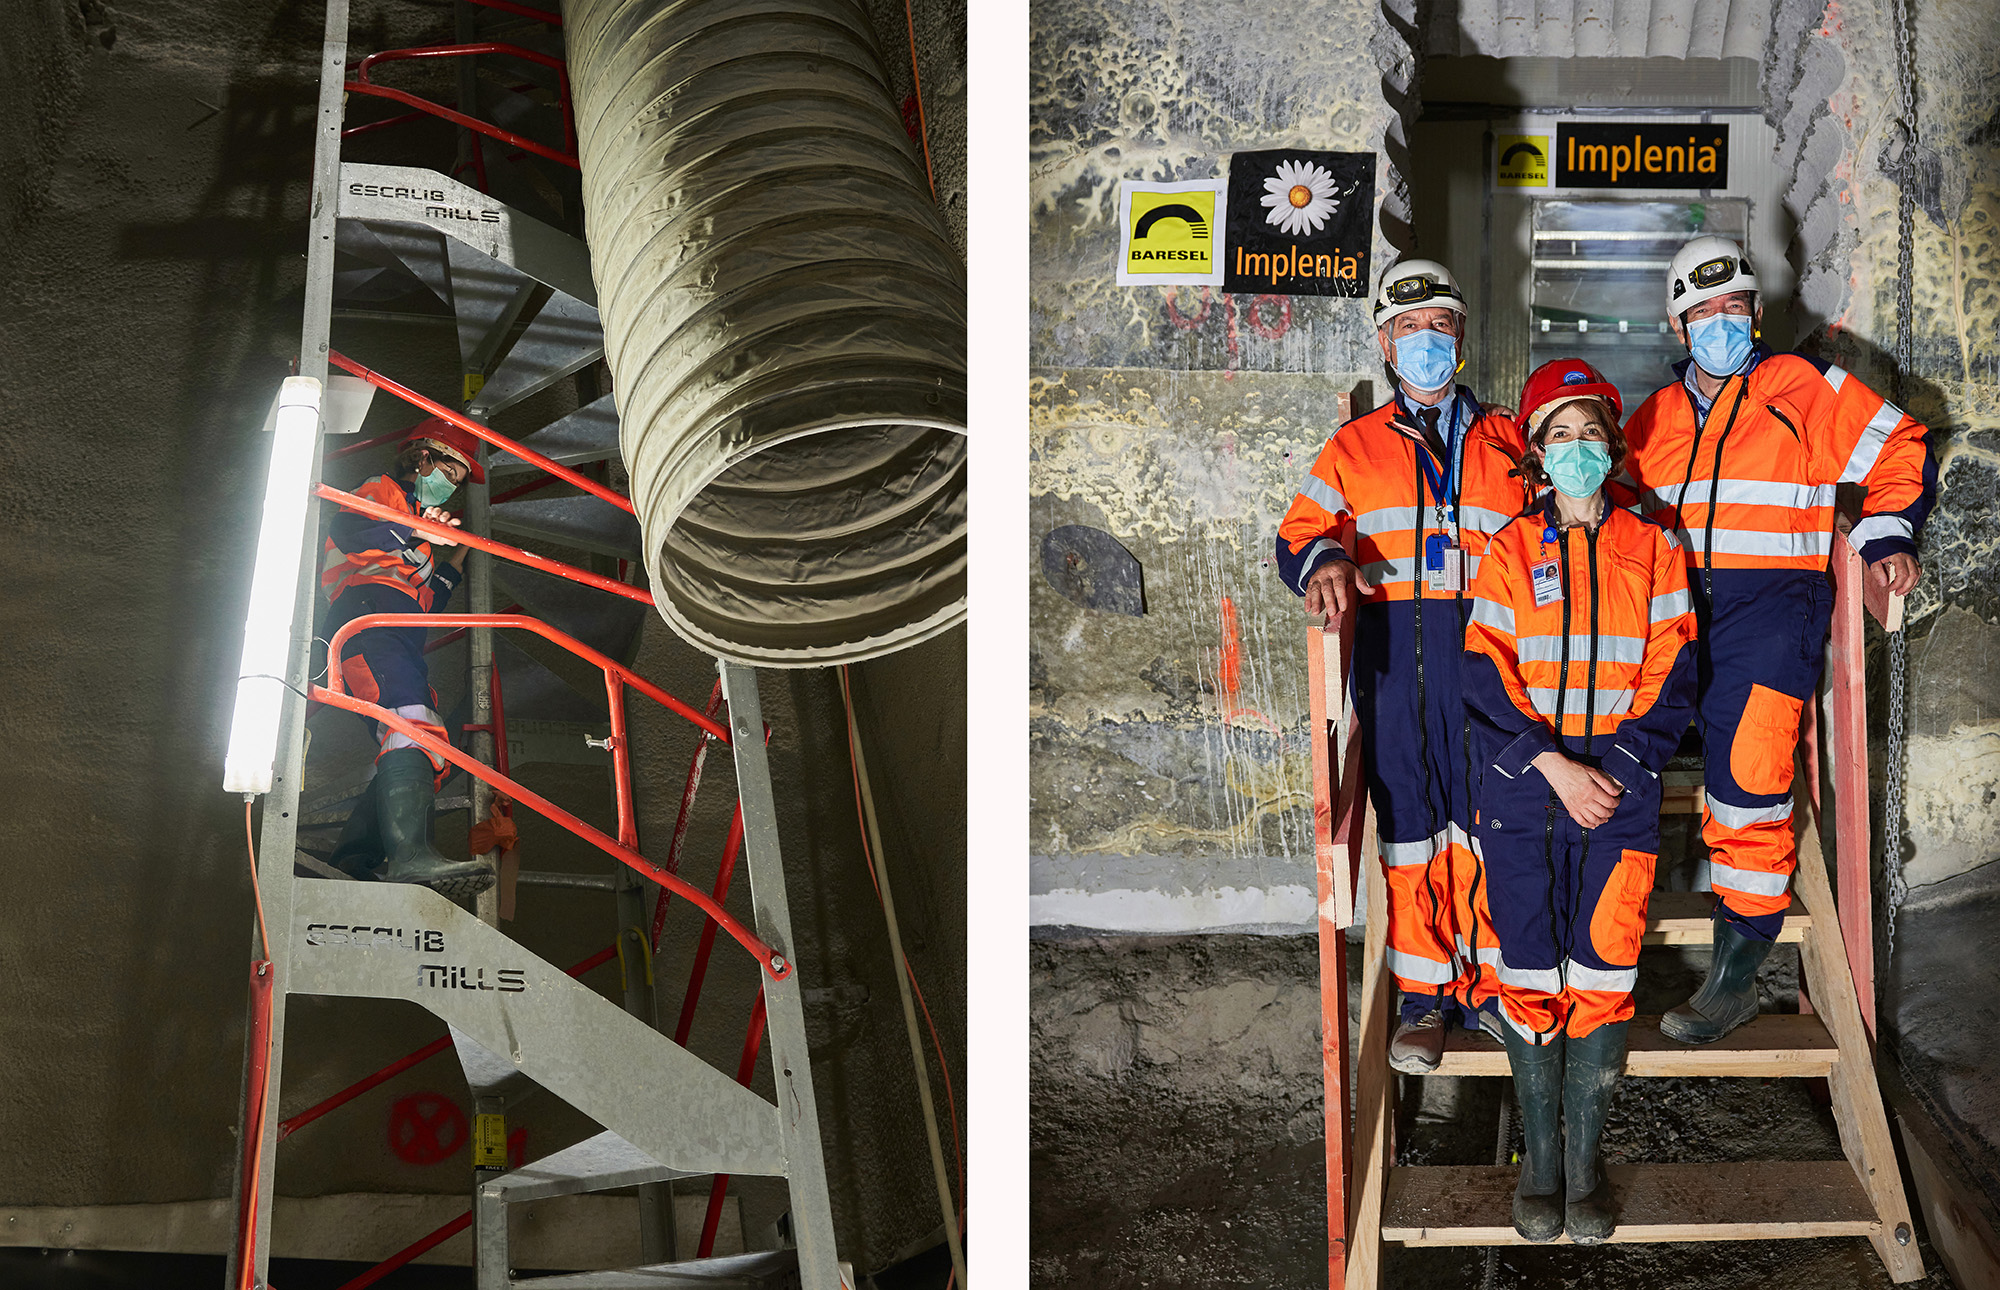 Leaders at CERN, dressed in orange work suits, descend the stairs and pose underground